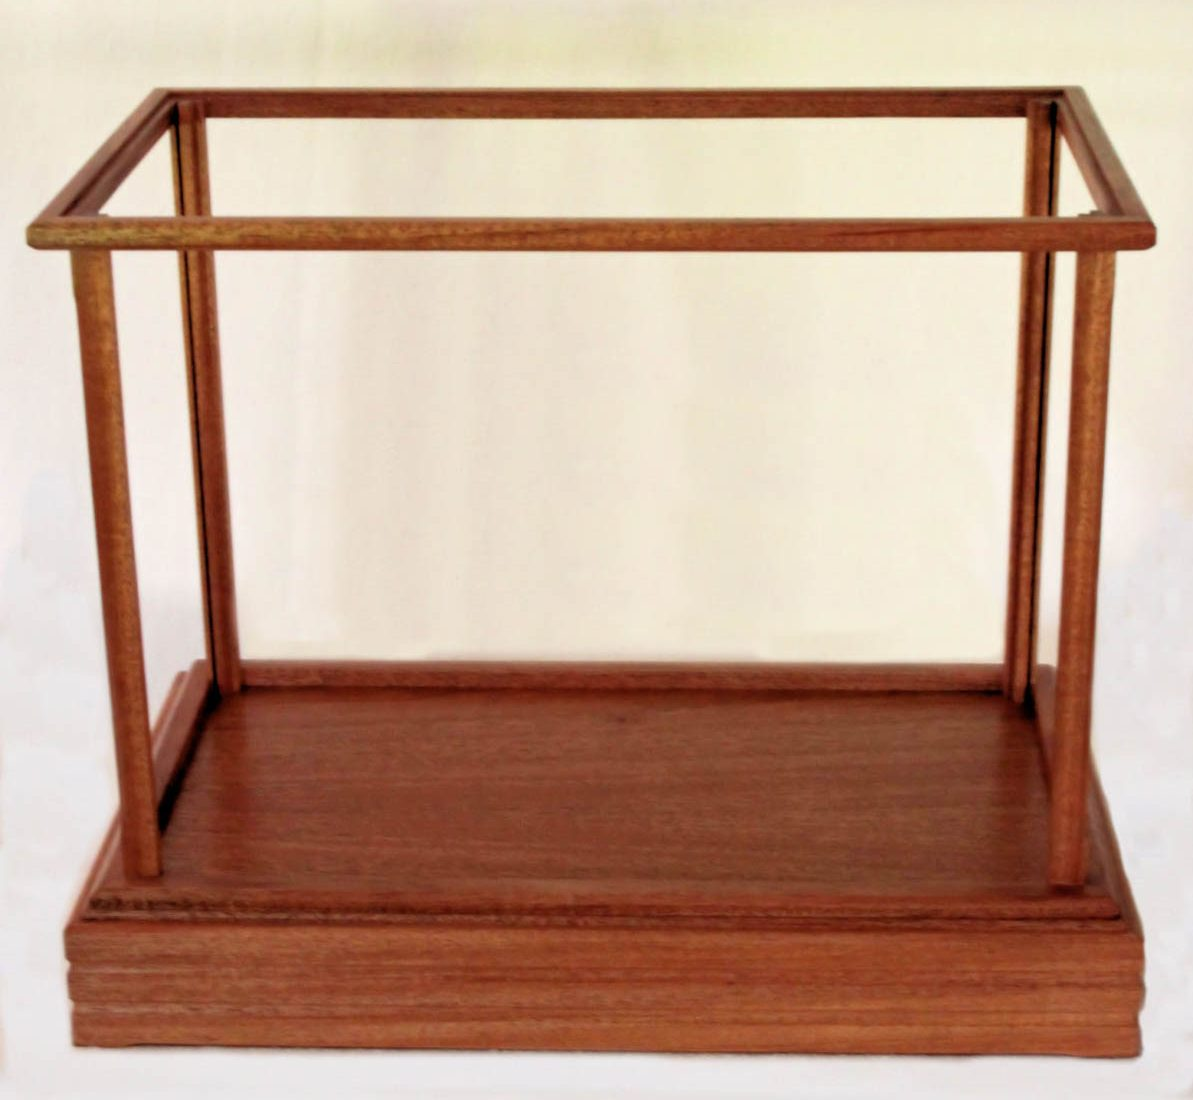 Mahogany display wood and glass box